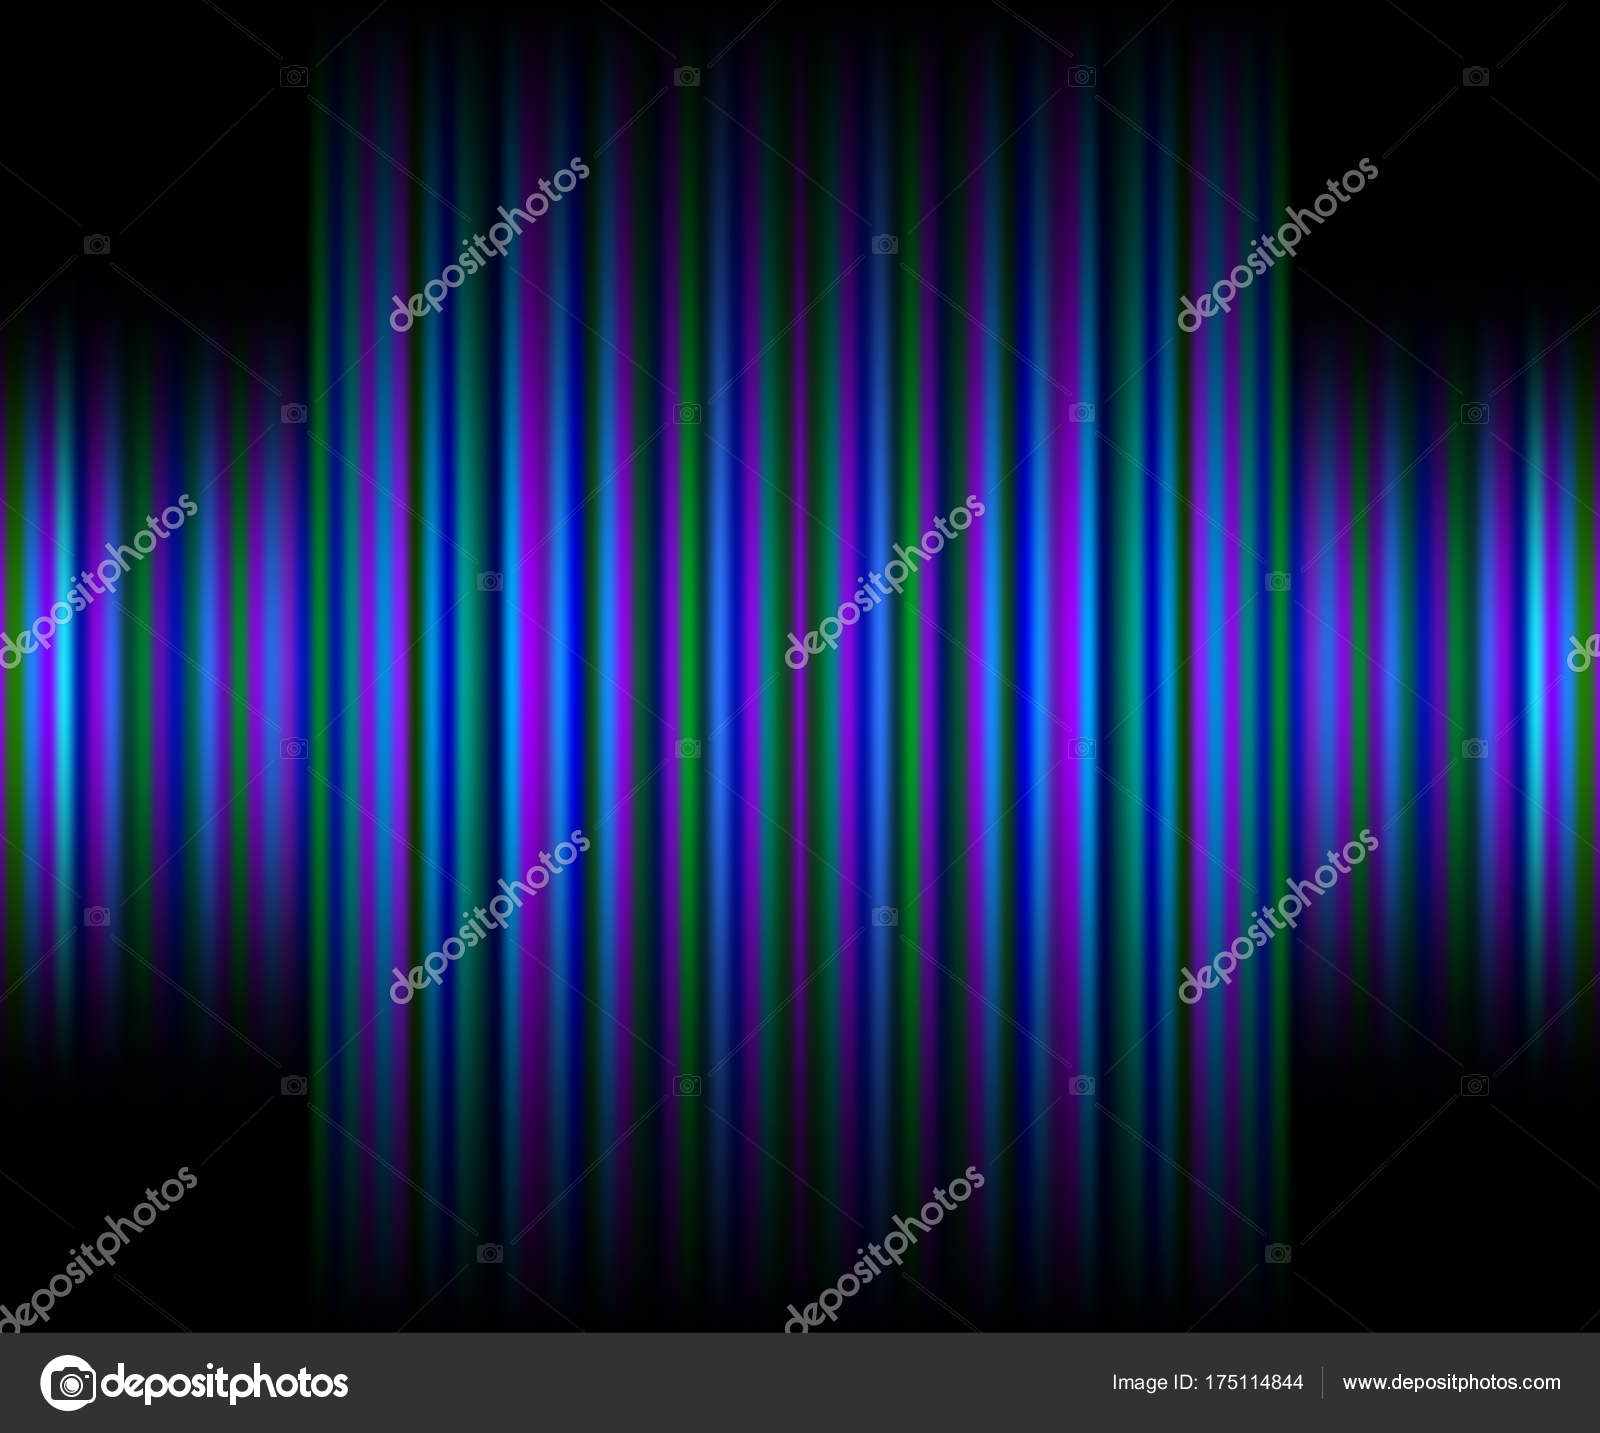 Abstract Black Neon Background With Vertical Pink, Purple Stripes U2014 Stock  Vector